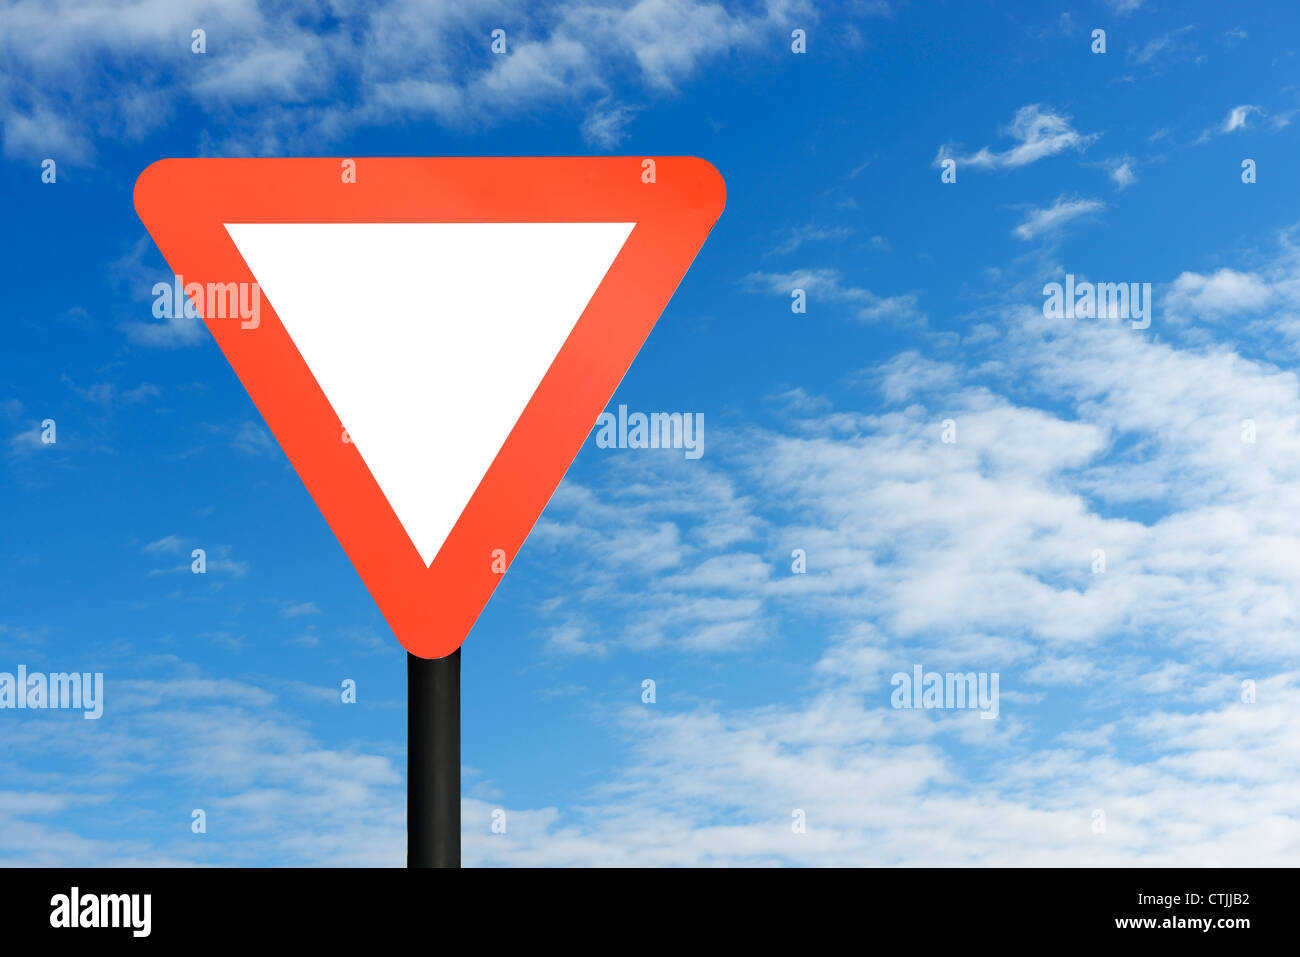 Red blank triangular road sign and blue sky Stock Photo